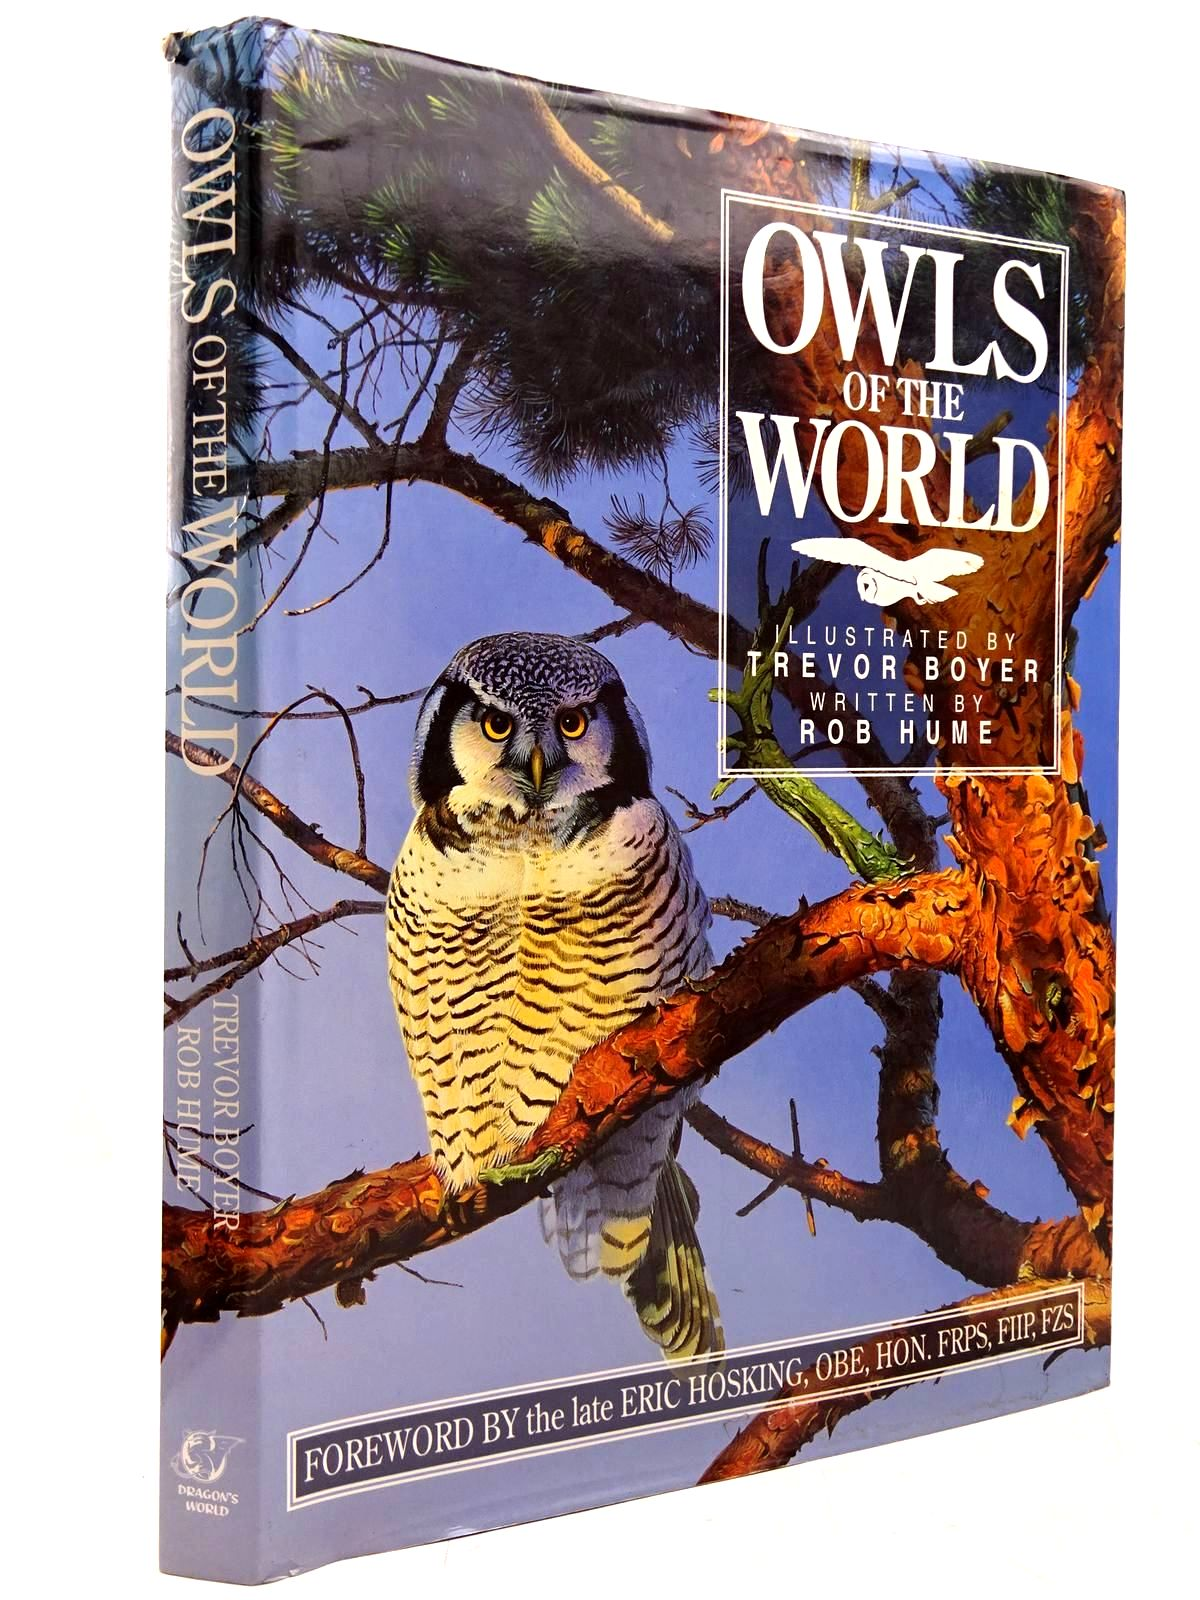 Photo of OWLS OF THE WORLD written by Hume, Rob illustrated by Boyer, Trevor published by Dragon's World (STOCK CODE: 2130999)  for sale by Stella & Rose's Books